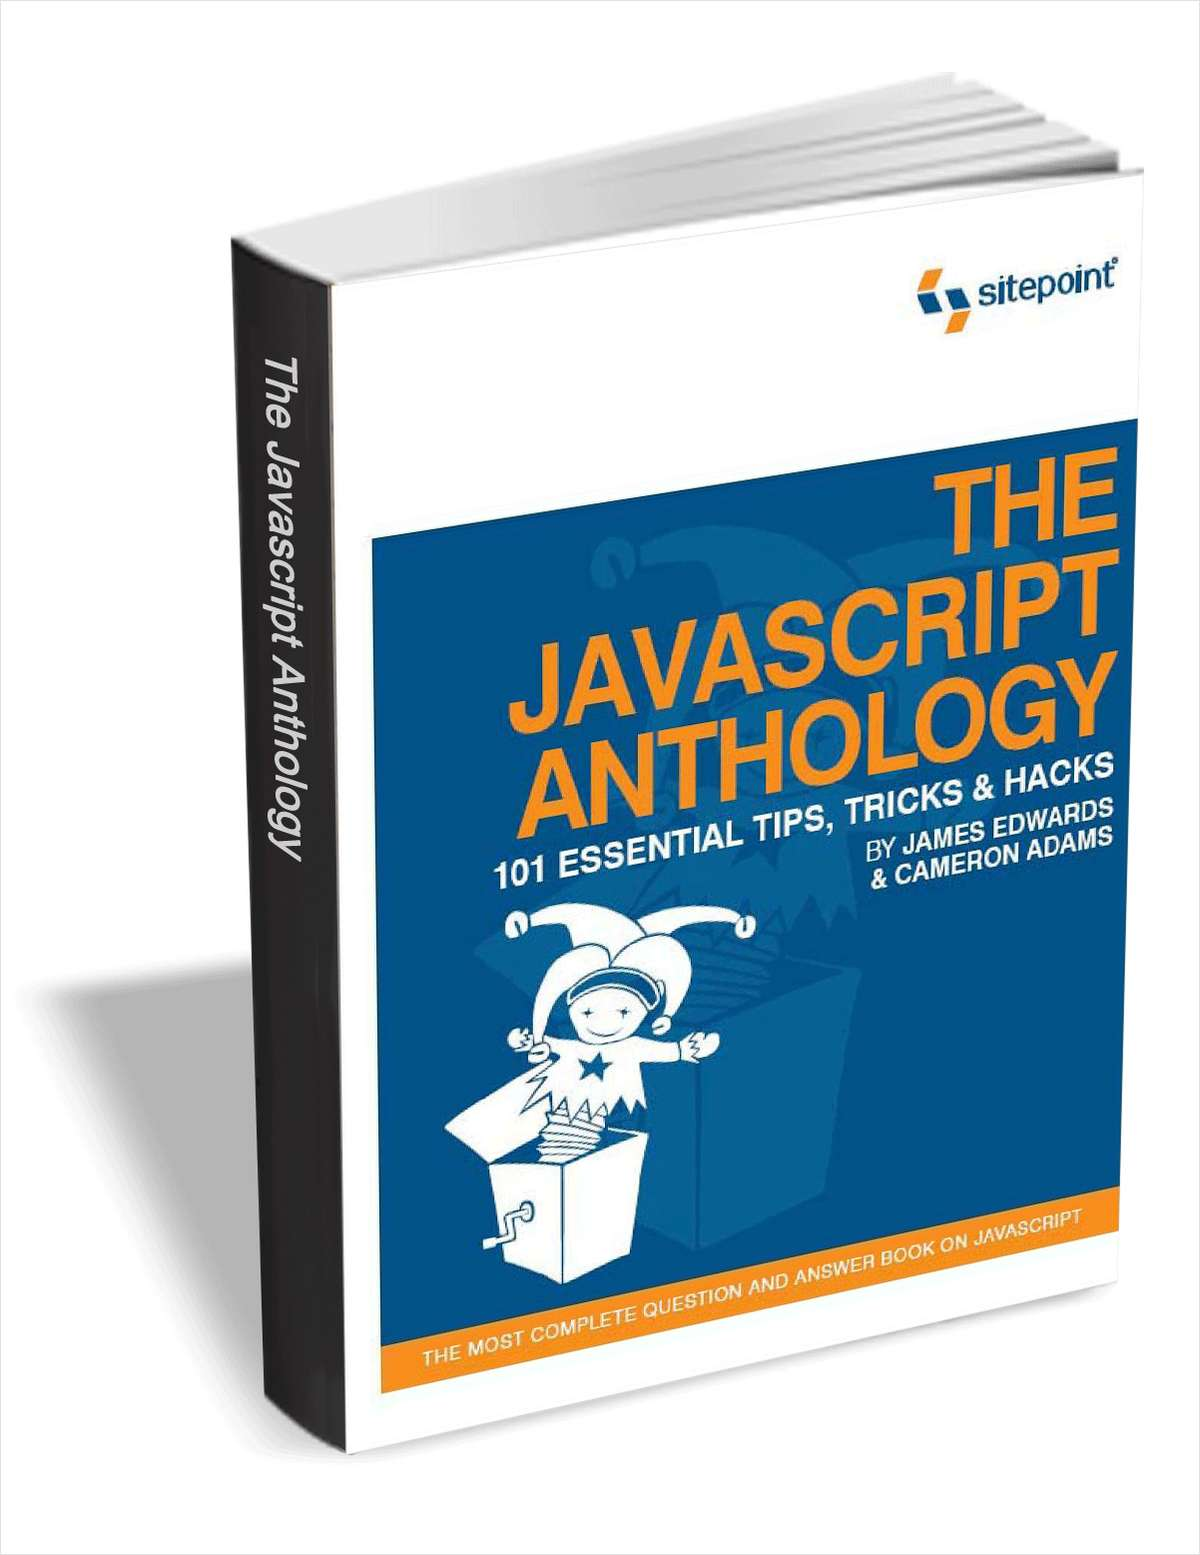 The JavaScript Anthology - 101 Essential Tips, Tricks & Hacks ($19 Value FREE For a Limited Time)